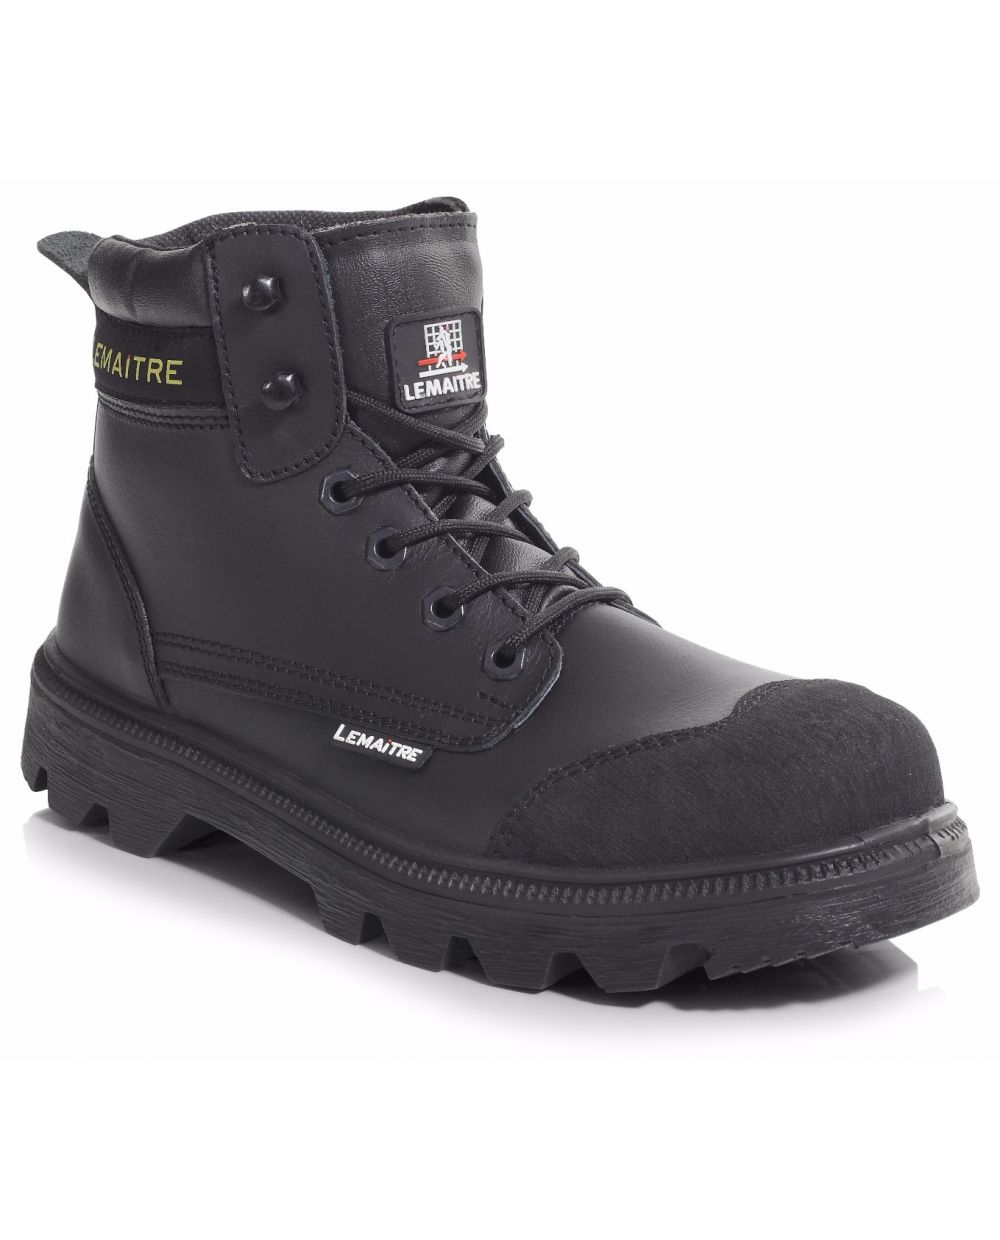 Stockton Parabolic Derby Boot